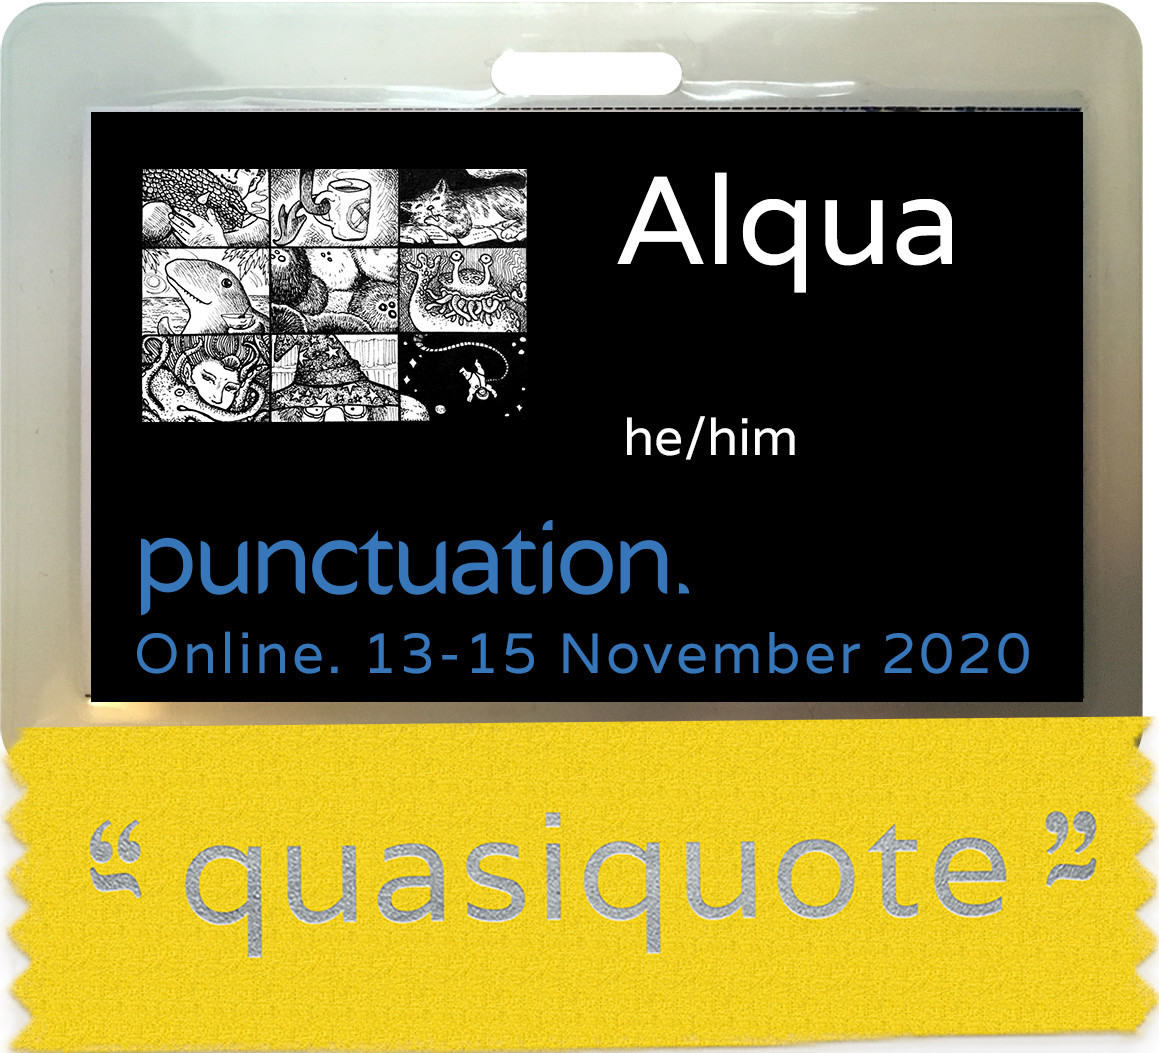 Convention badge with a ribbon. Badge is black and features convention graphic, inscriptions in white 'Alqua' and 'he/him', and inscription in blue 'punctuation. Online. 13 - 15 November 2020'. The ribbon is yellow and reads 'quasiquote'.